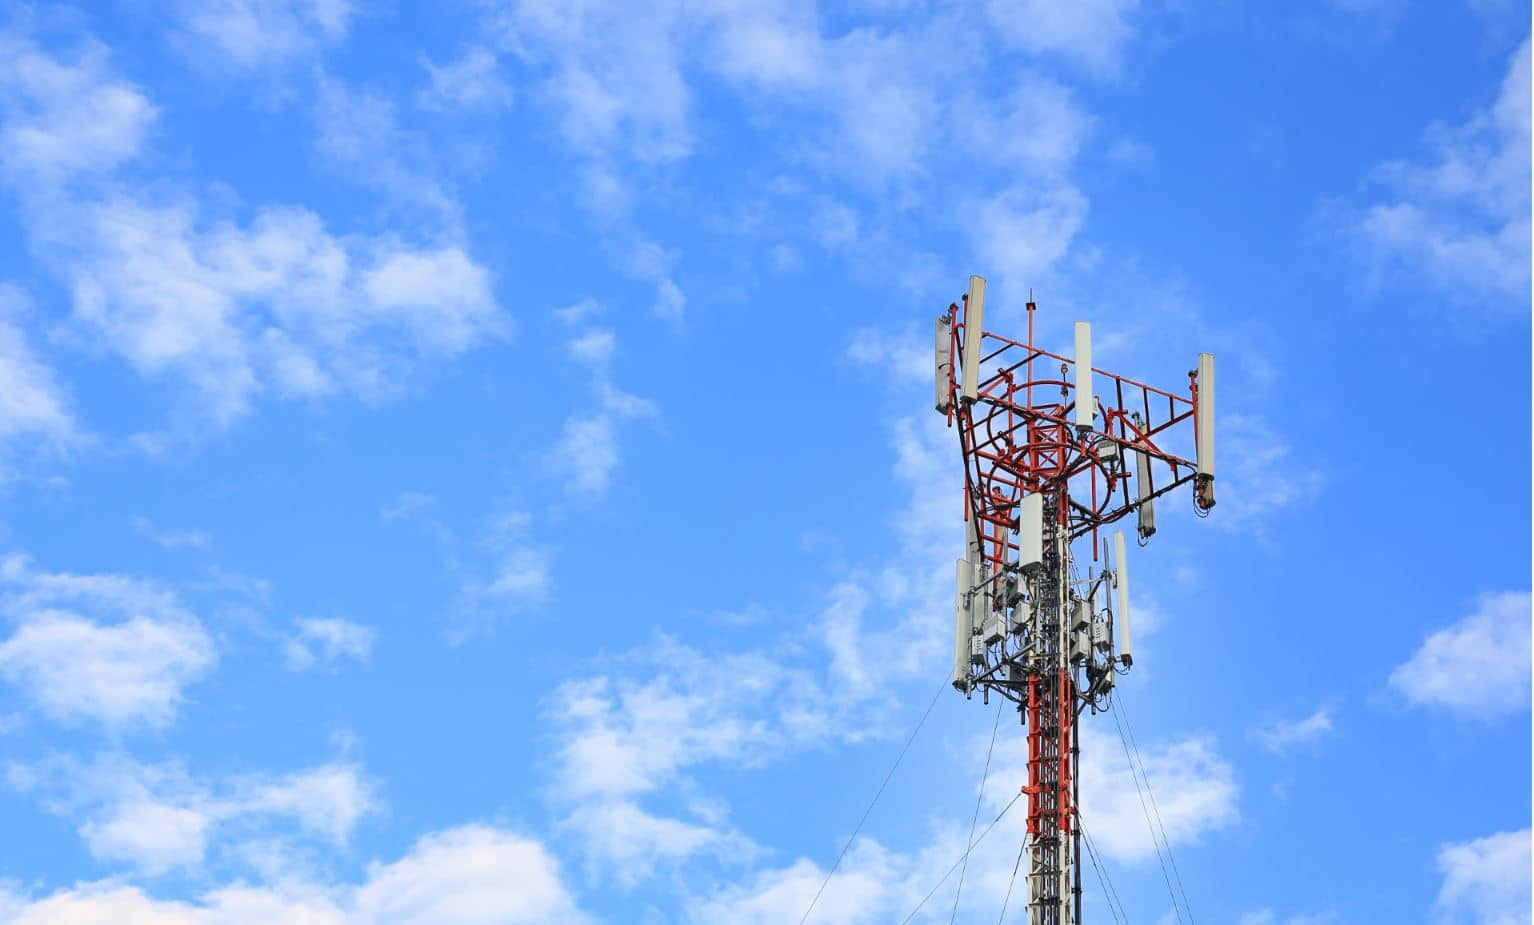 Phoenix Tower acquires Syscom Telecom, adds 80,000 sites to portfolio